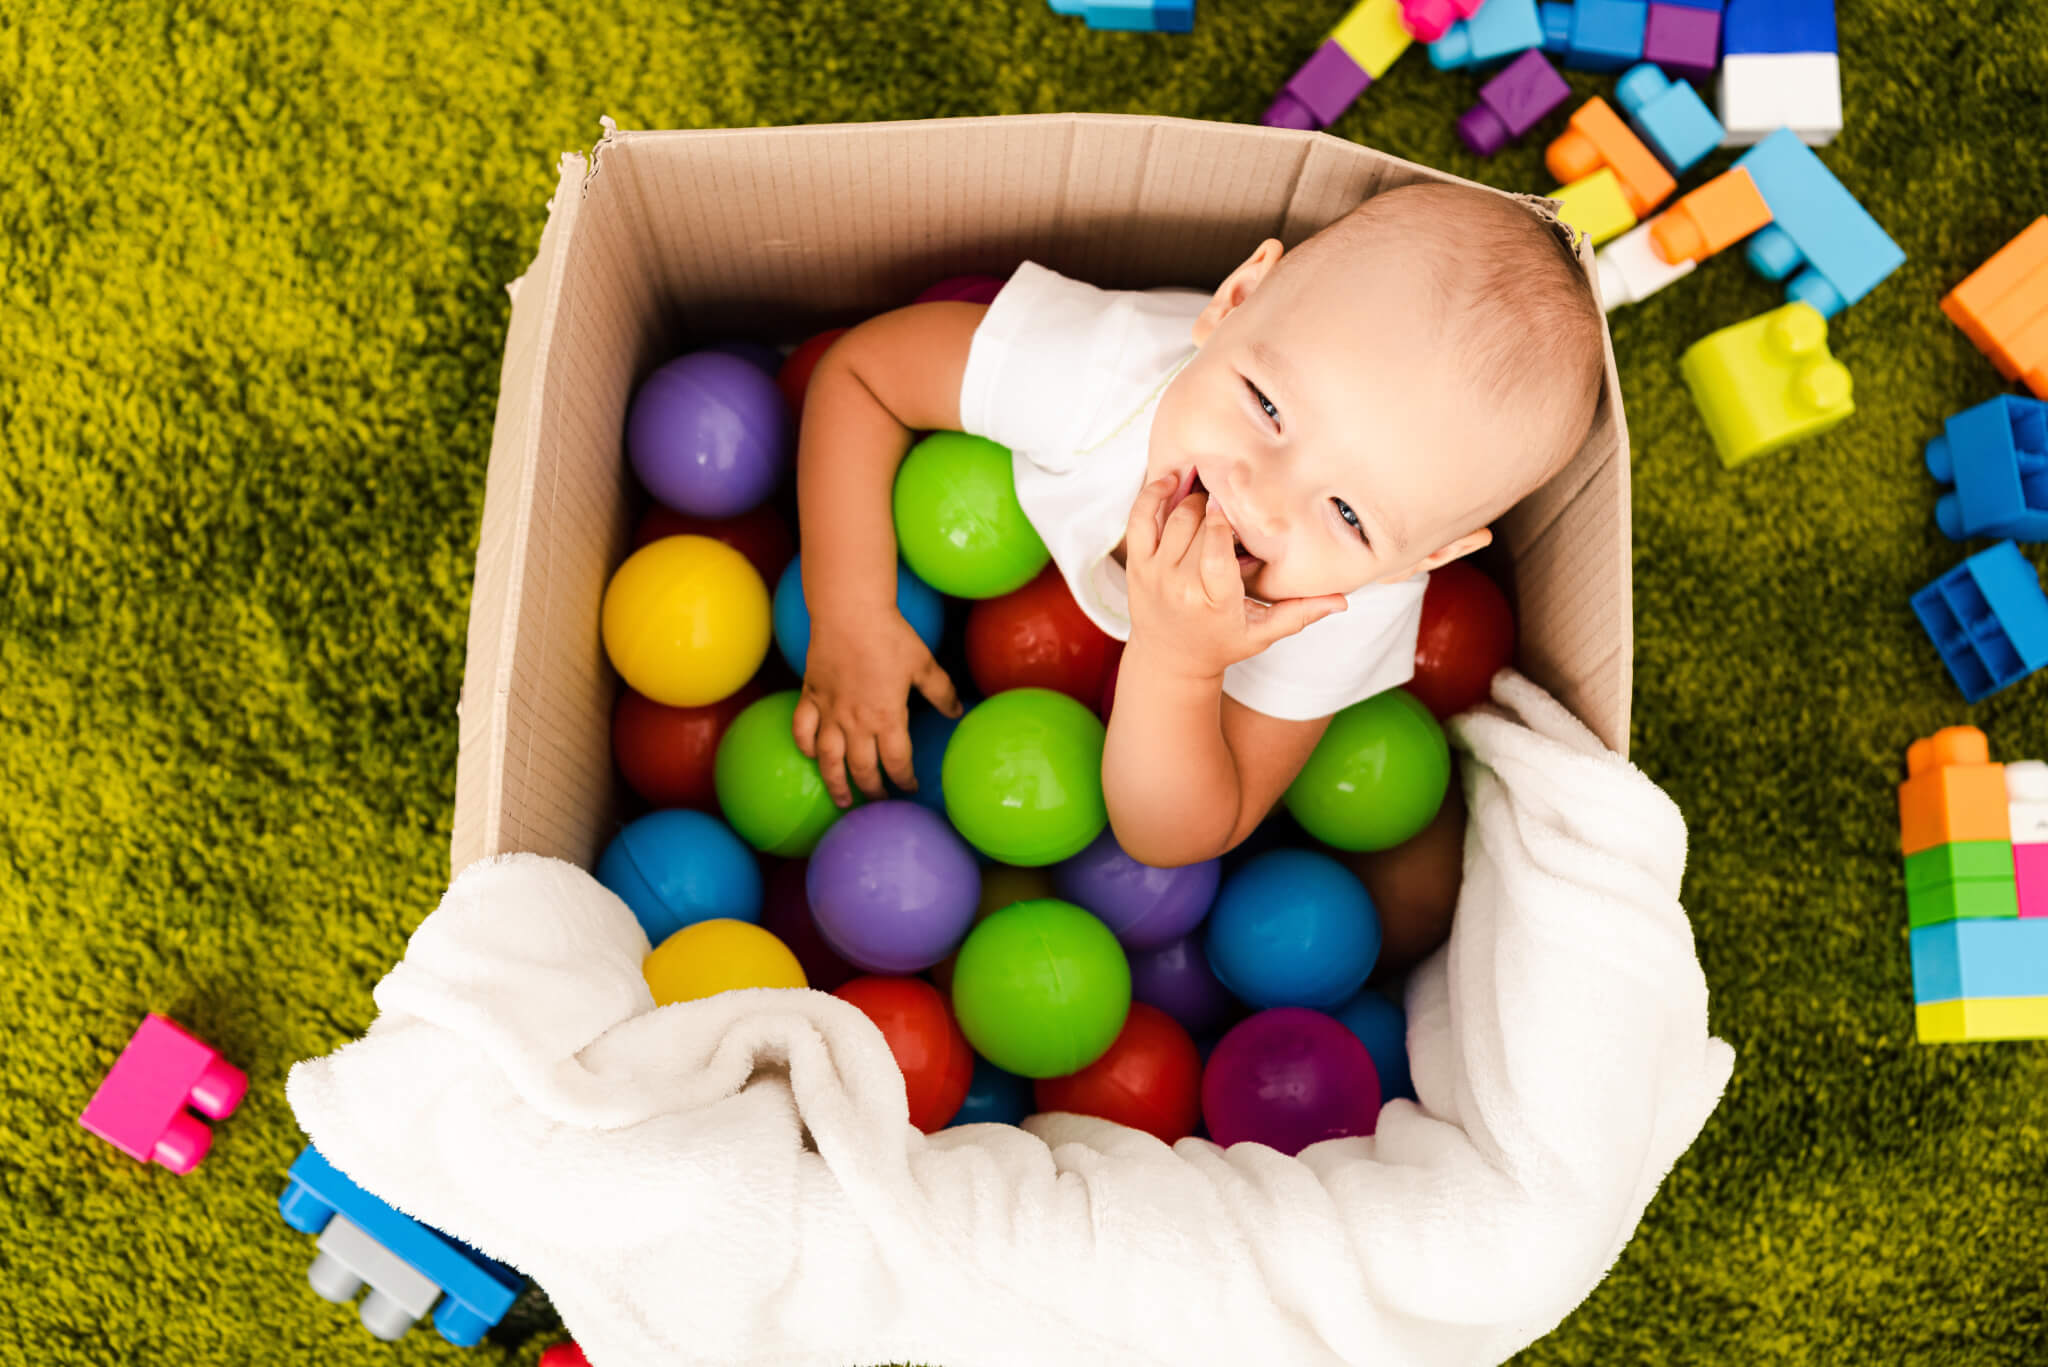 baby in box filled with colorful balls